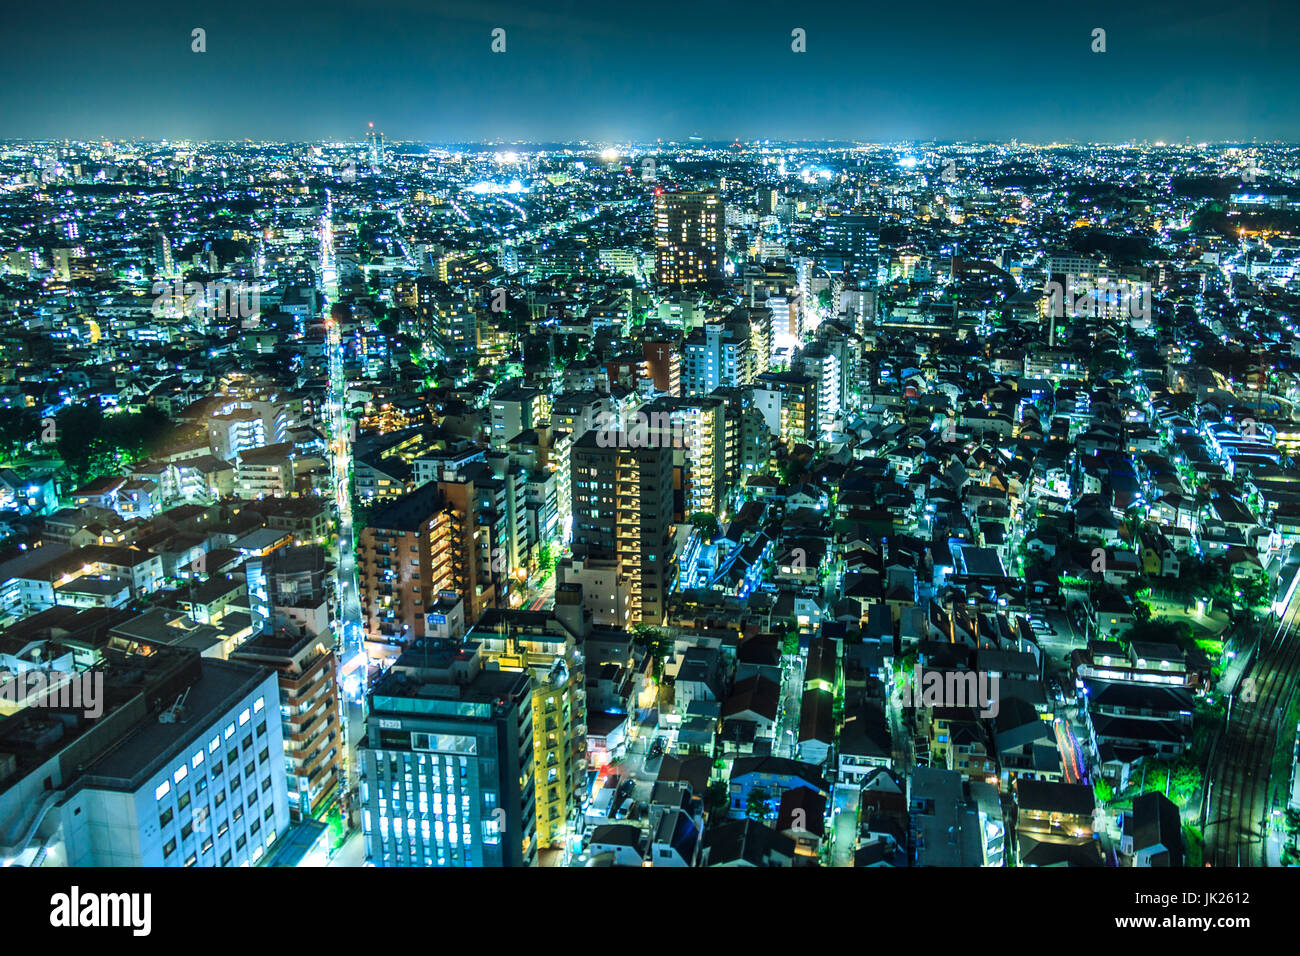 Tokyo cityscape at night - Stock Image